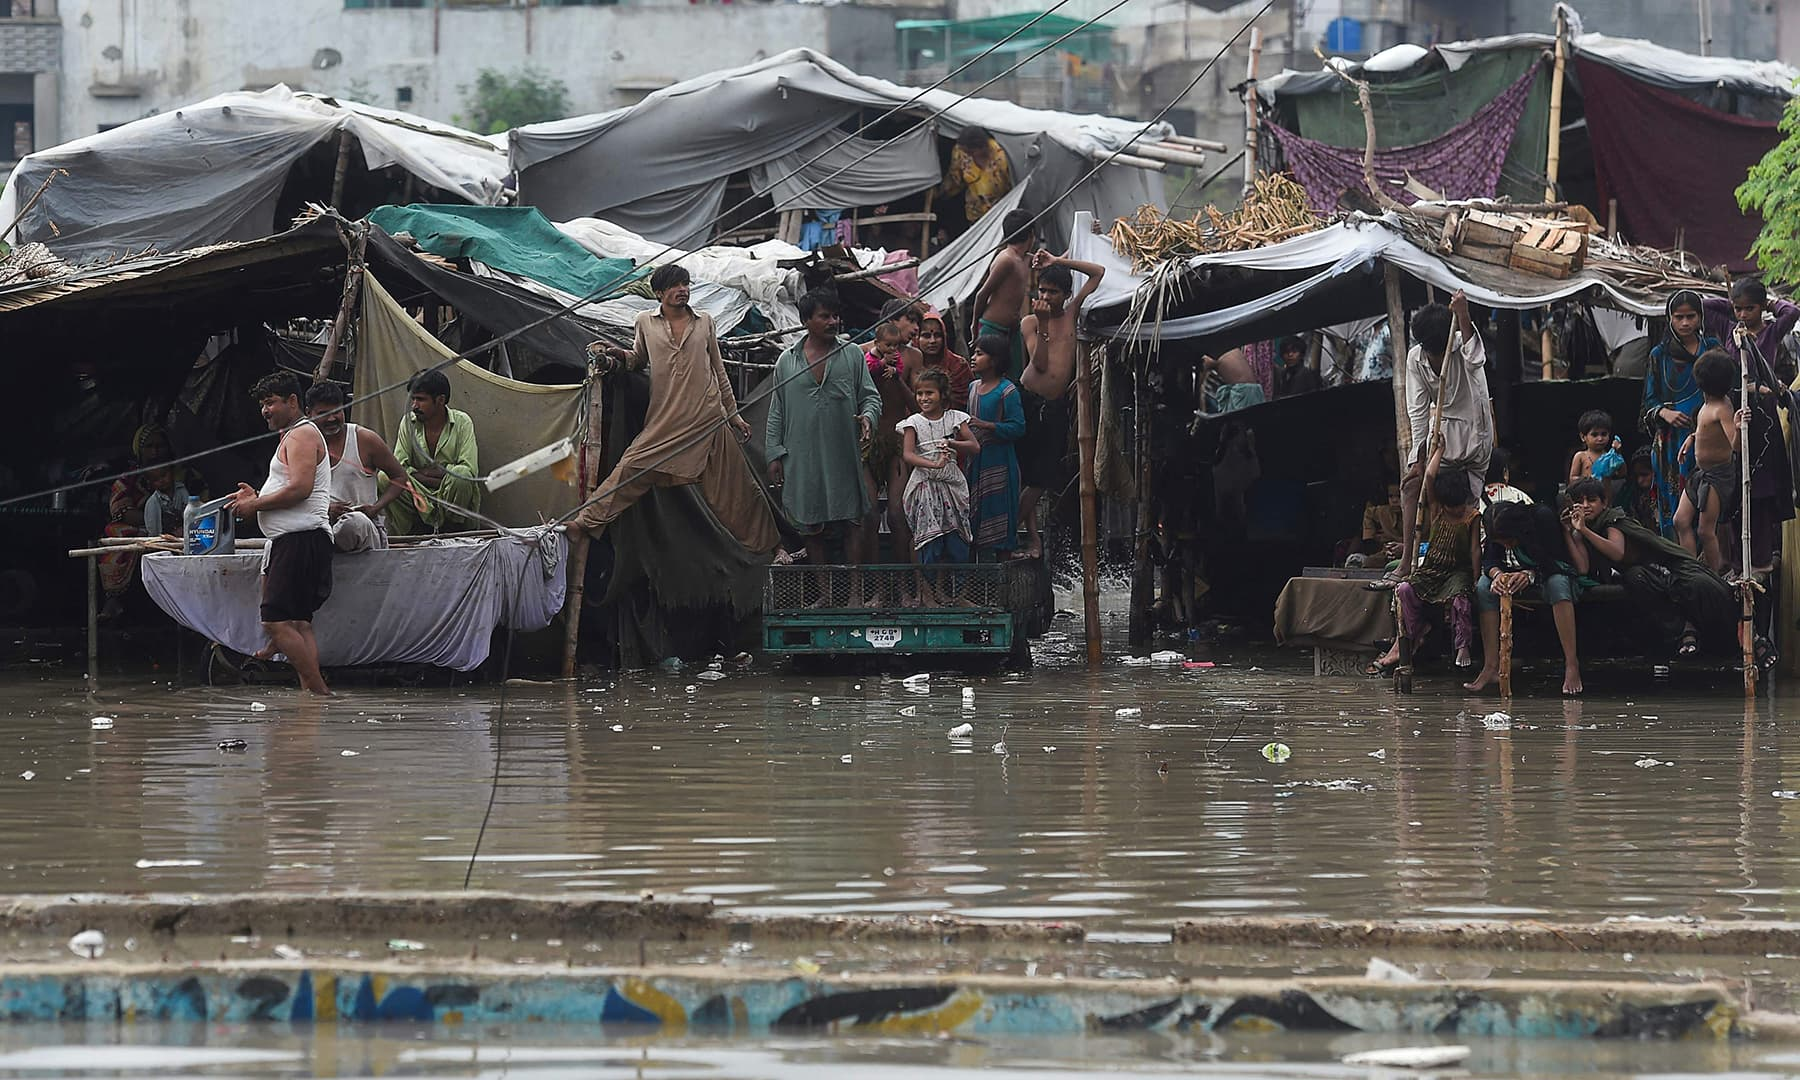 People shelter in their makeshift homes alongside a flooded street after heavy rainfall in Karachi. — AFP